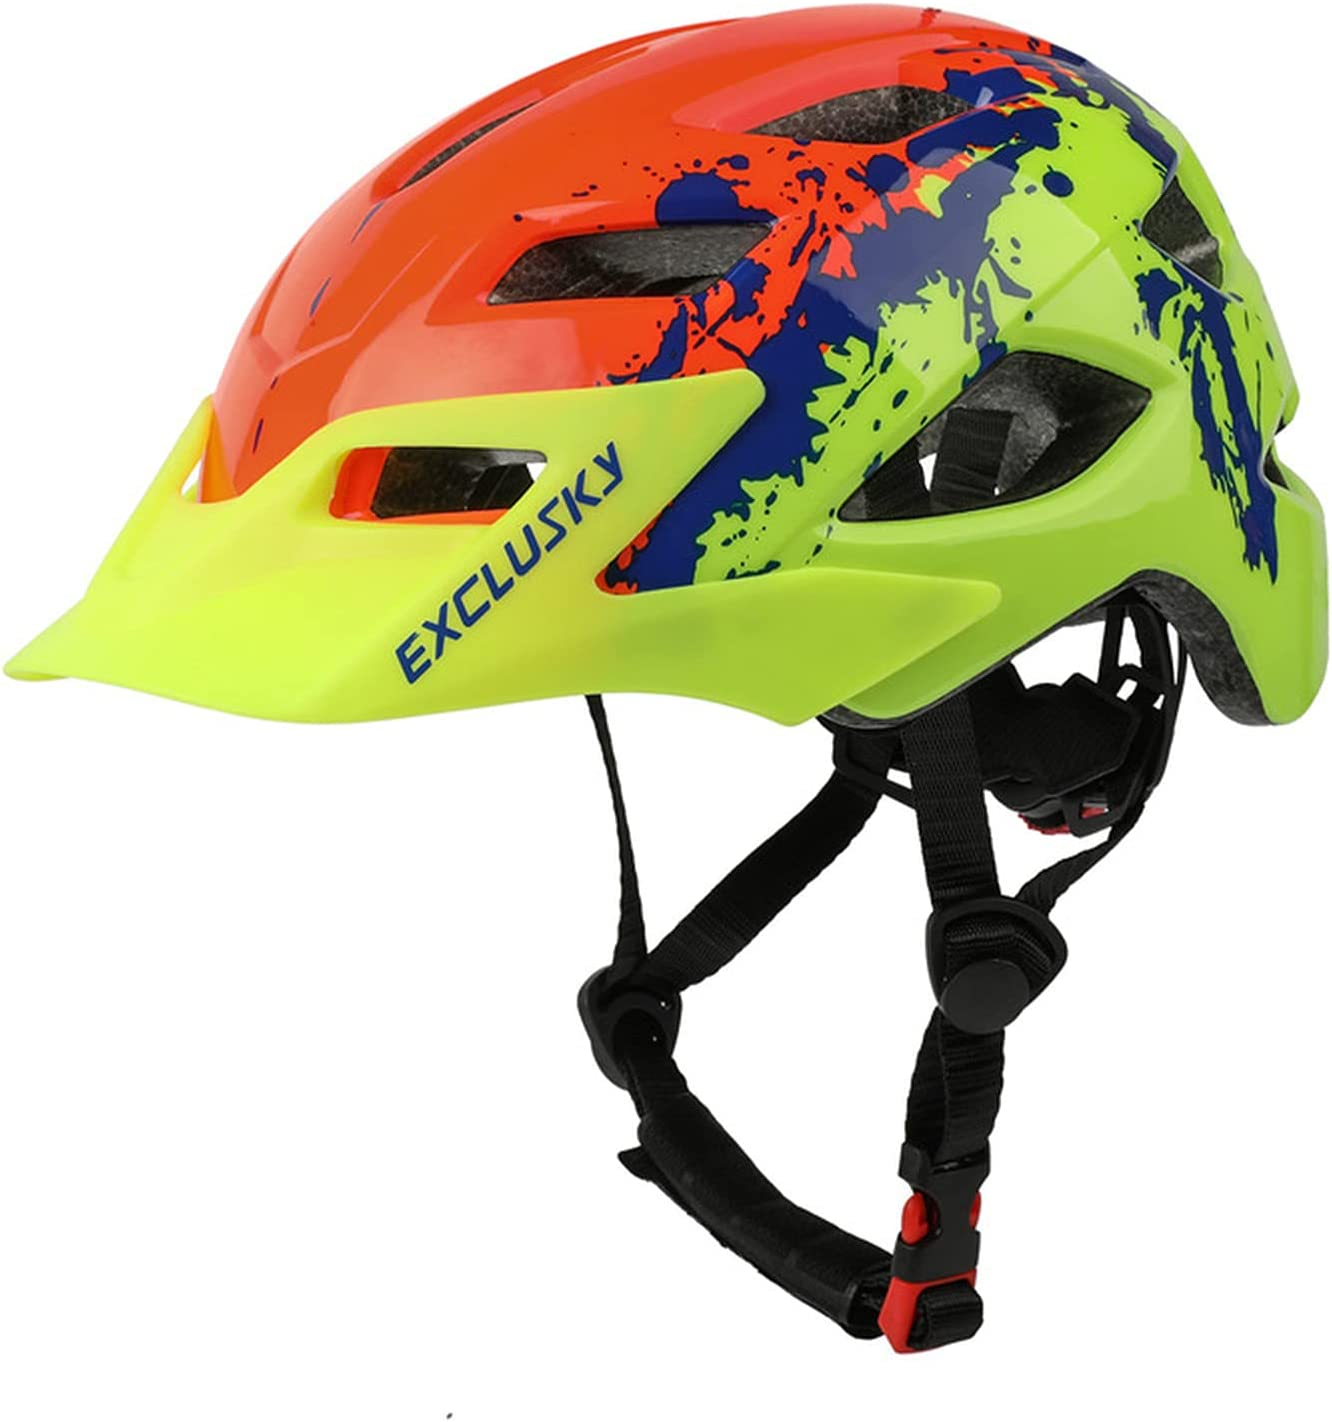 Children's Riding Helmet Manufacturer direct delivery Bicycle Skateboard Girls Skati and Boys Deluxe